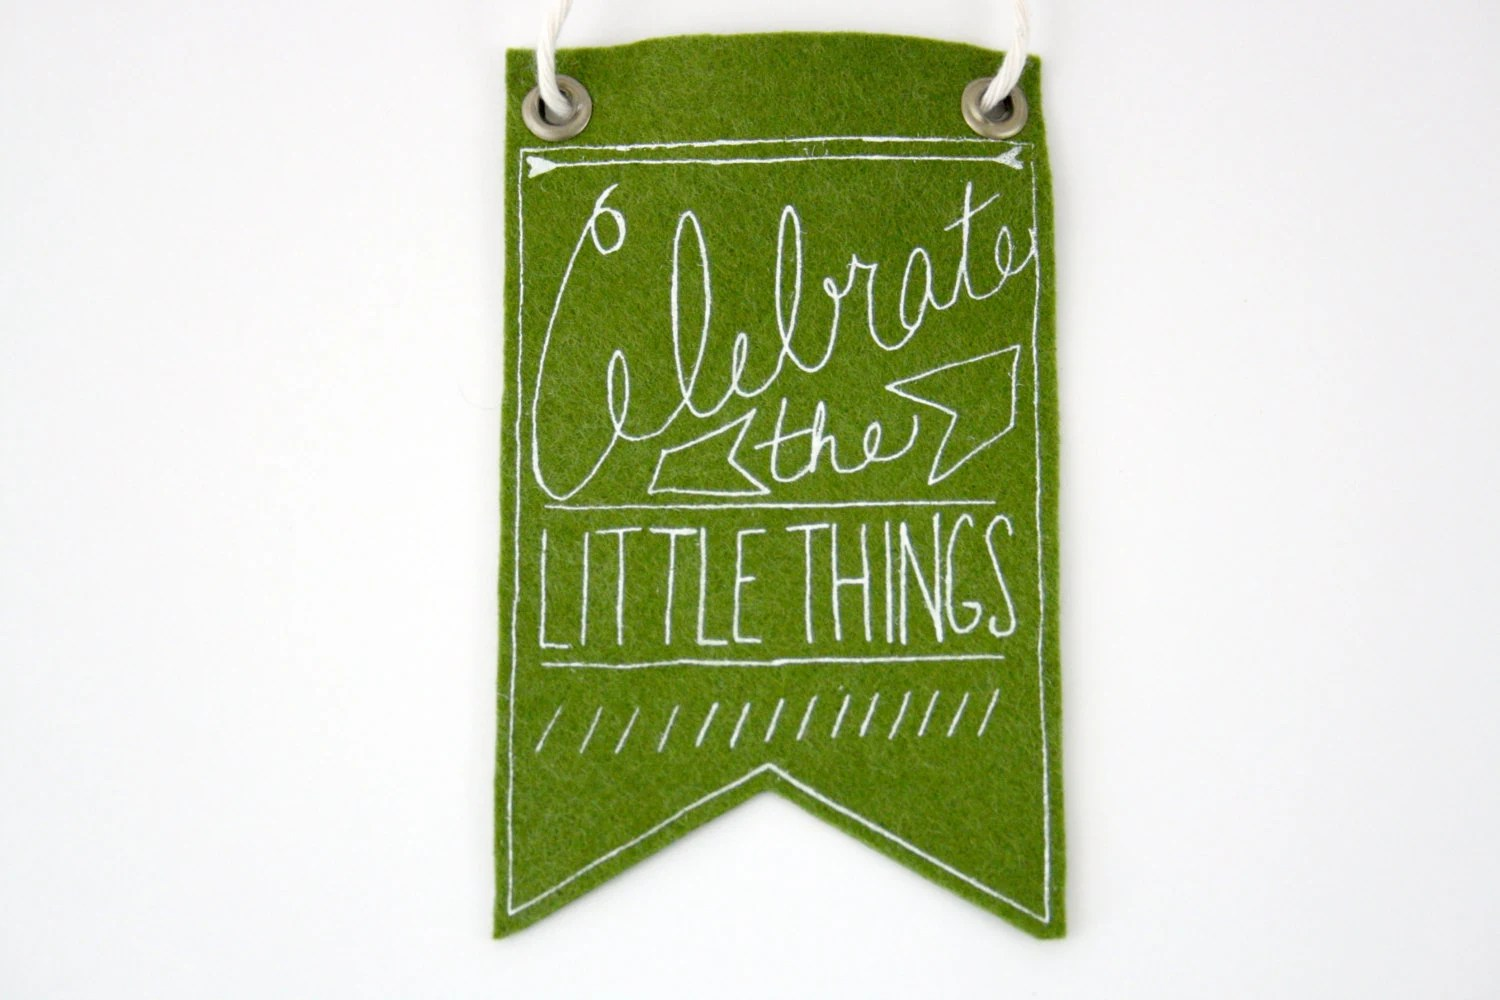 Mini-Banner wall hanging, moss green wool blend felt, screen print in white ink